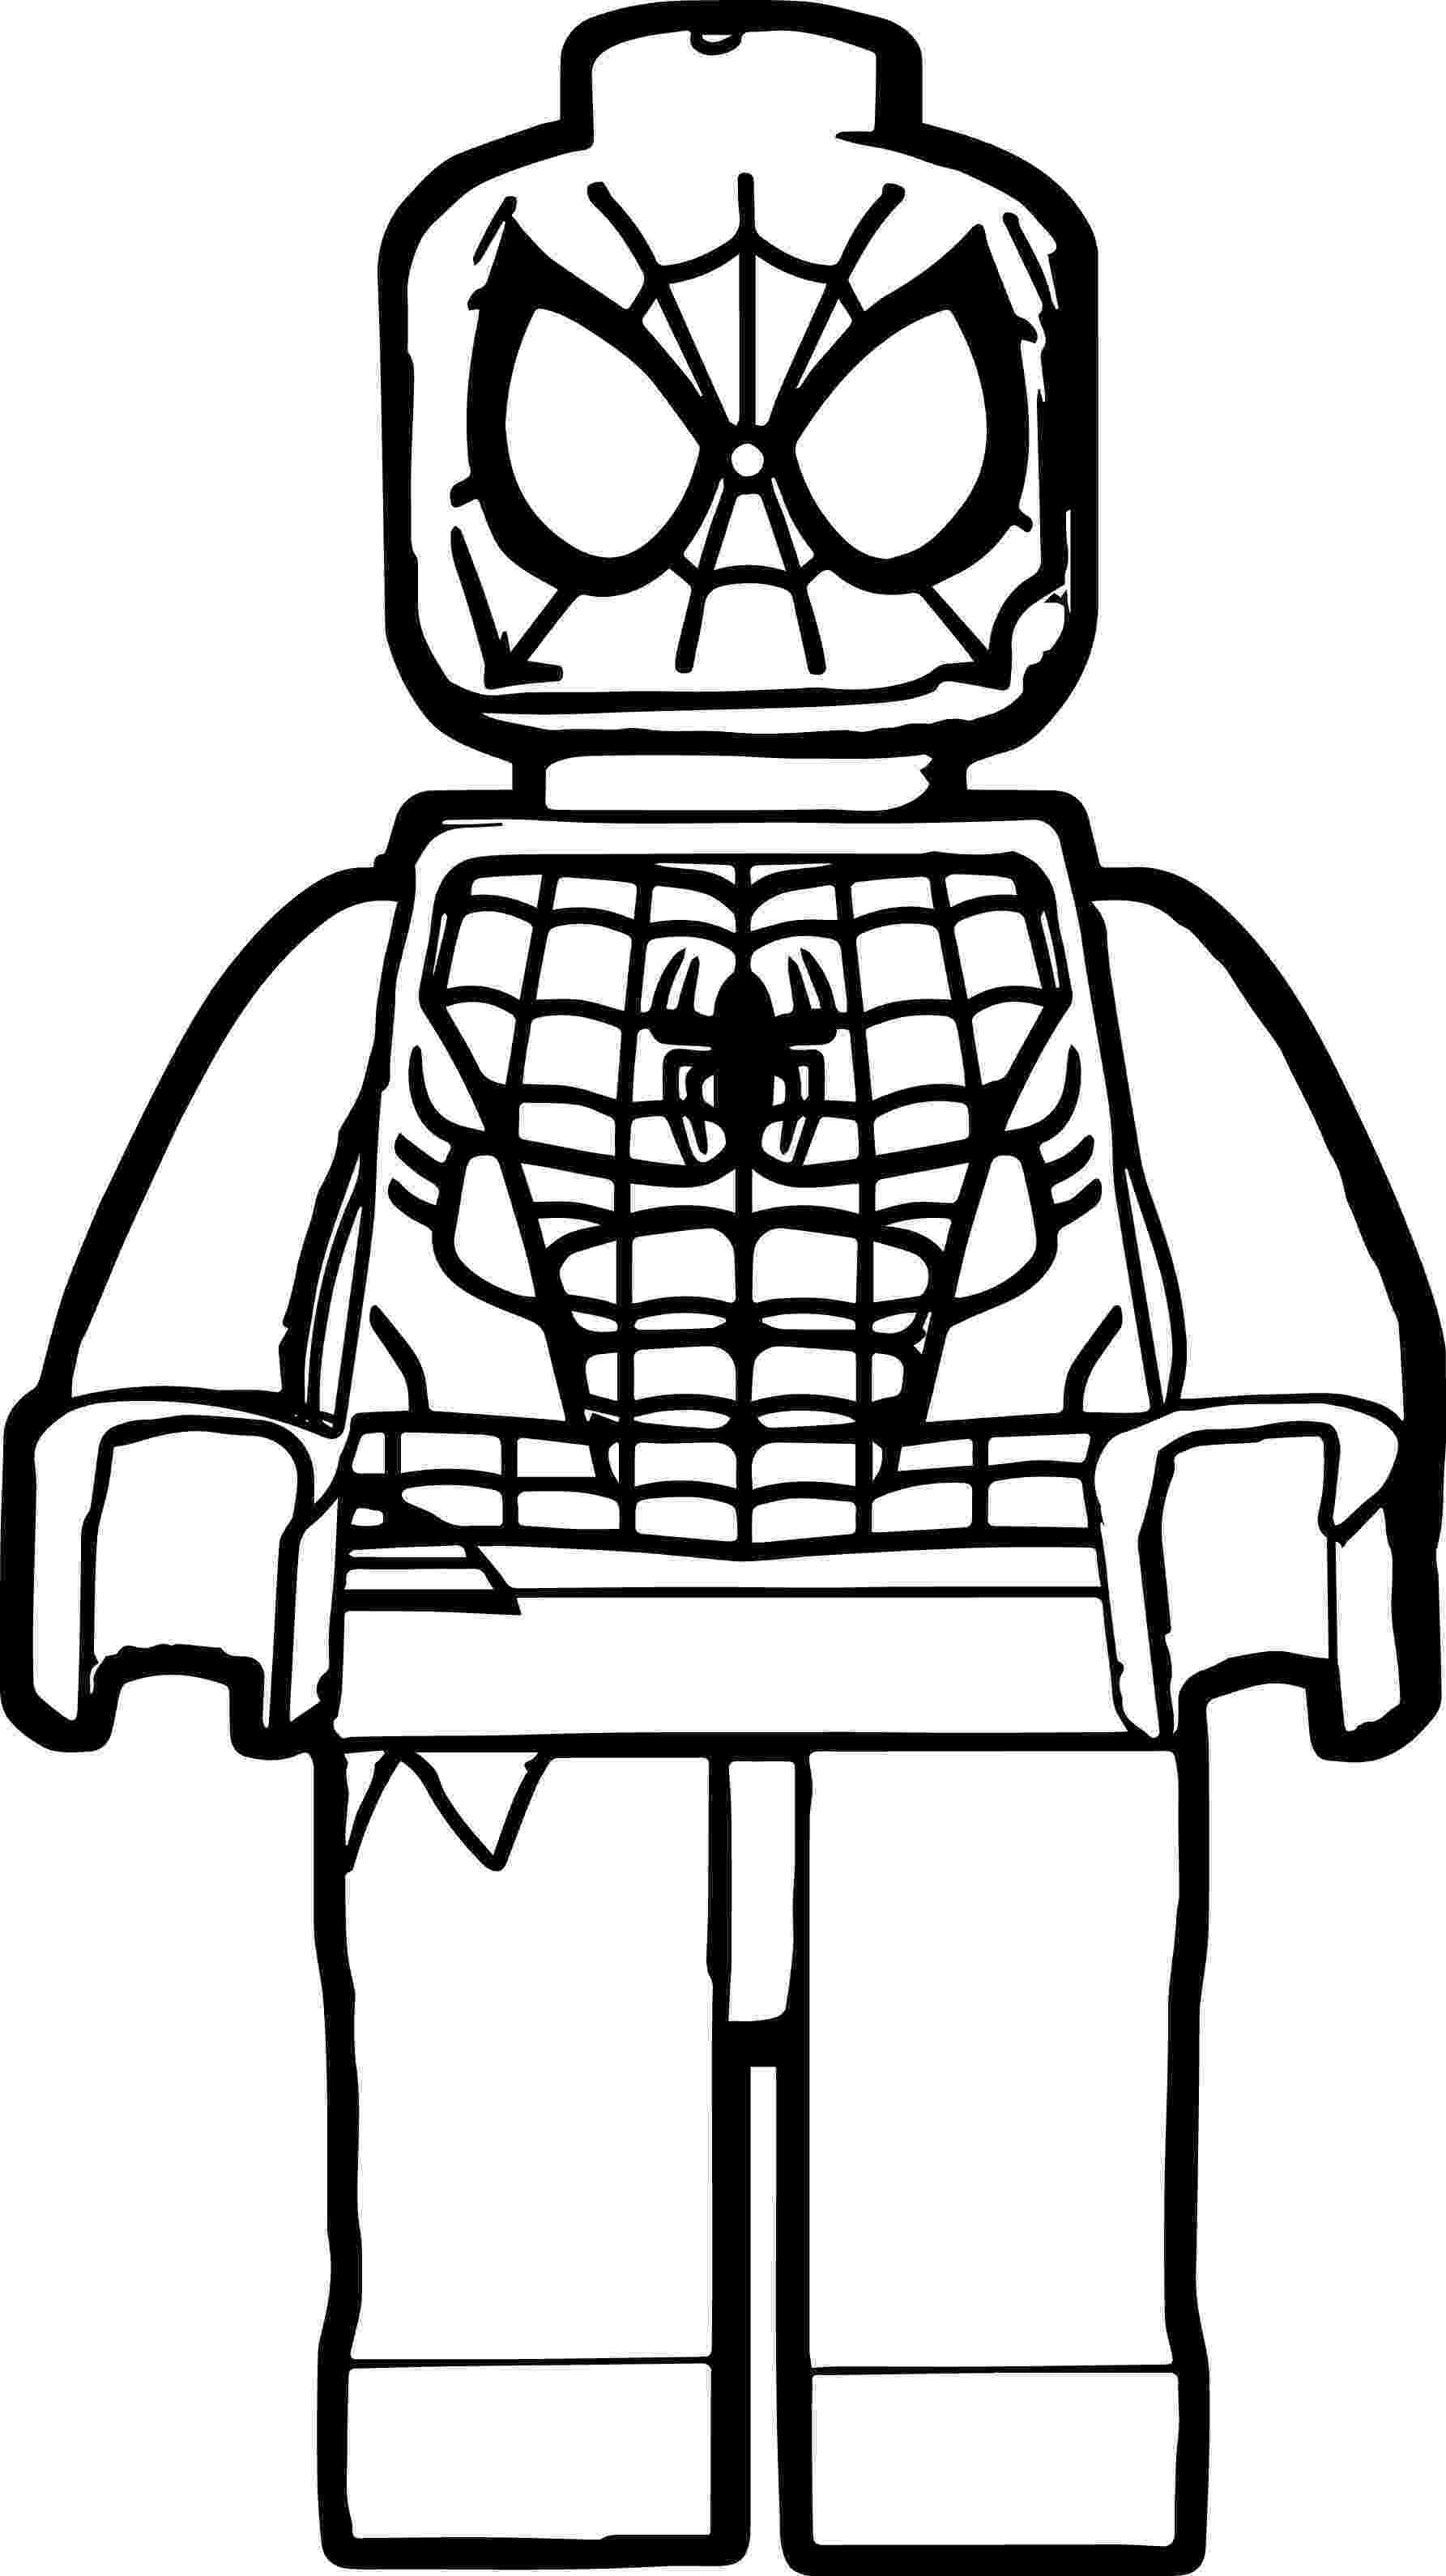 lego man coloring pages spider man lego coloring page lego coloring pages man pages coloring lego